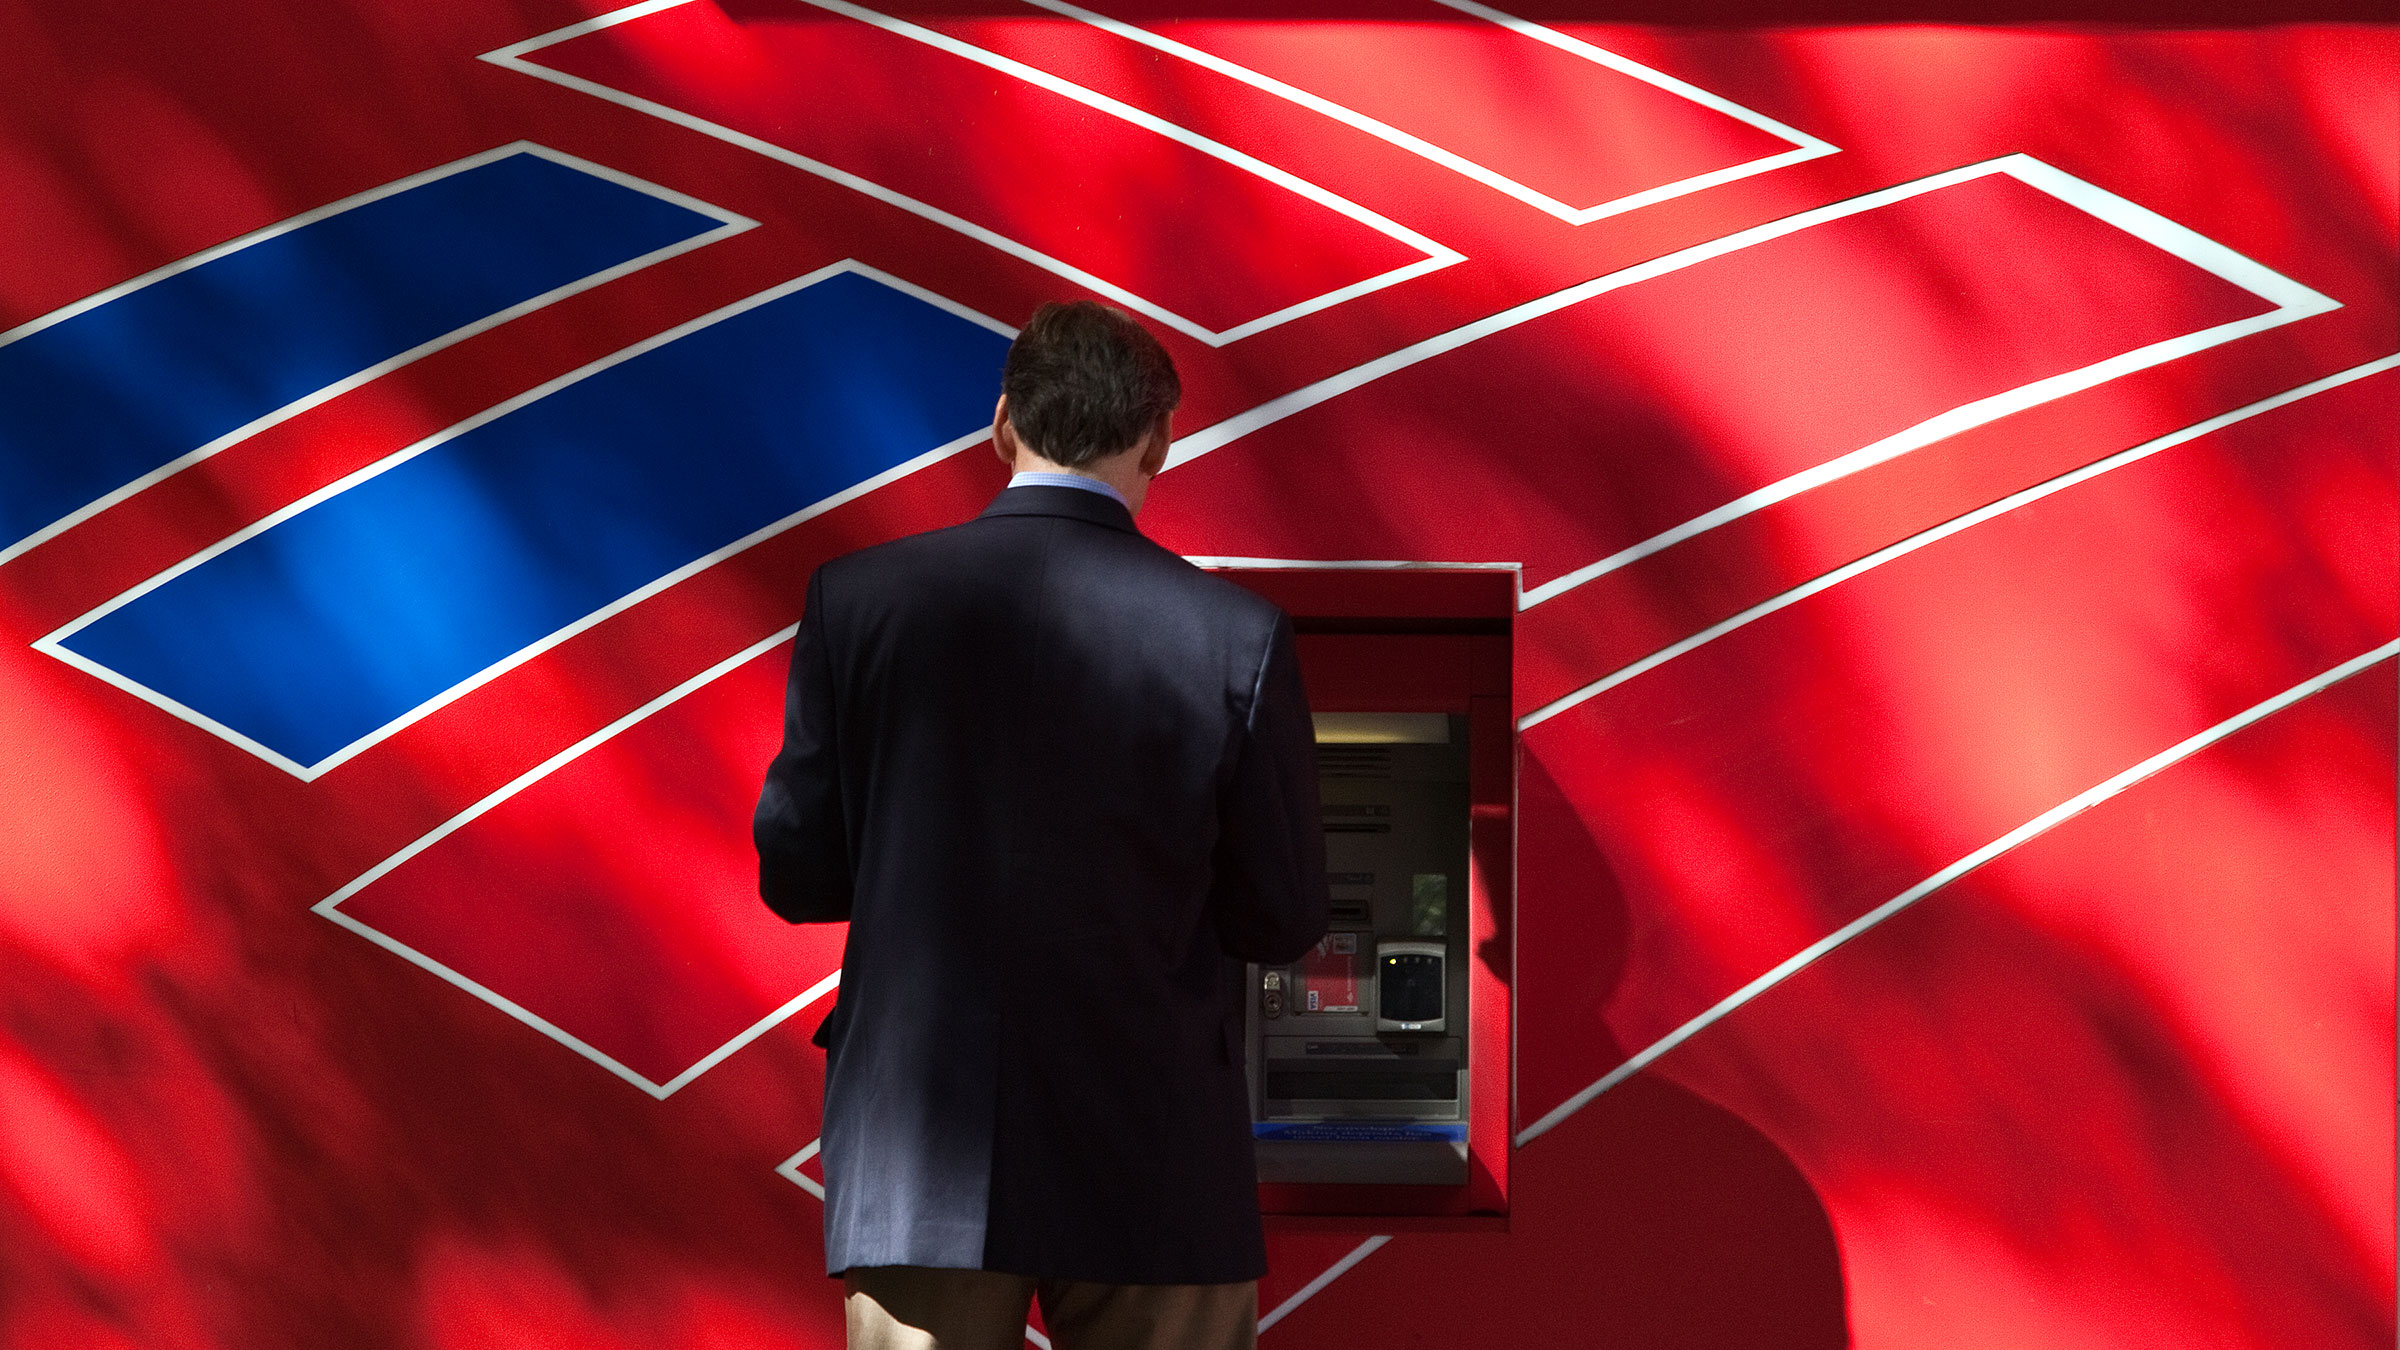 Bank of America logo and ATM.